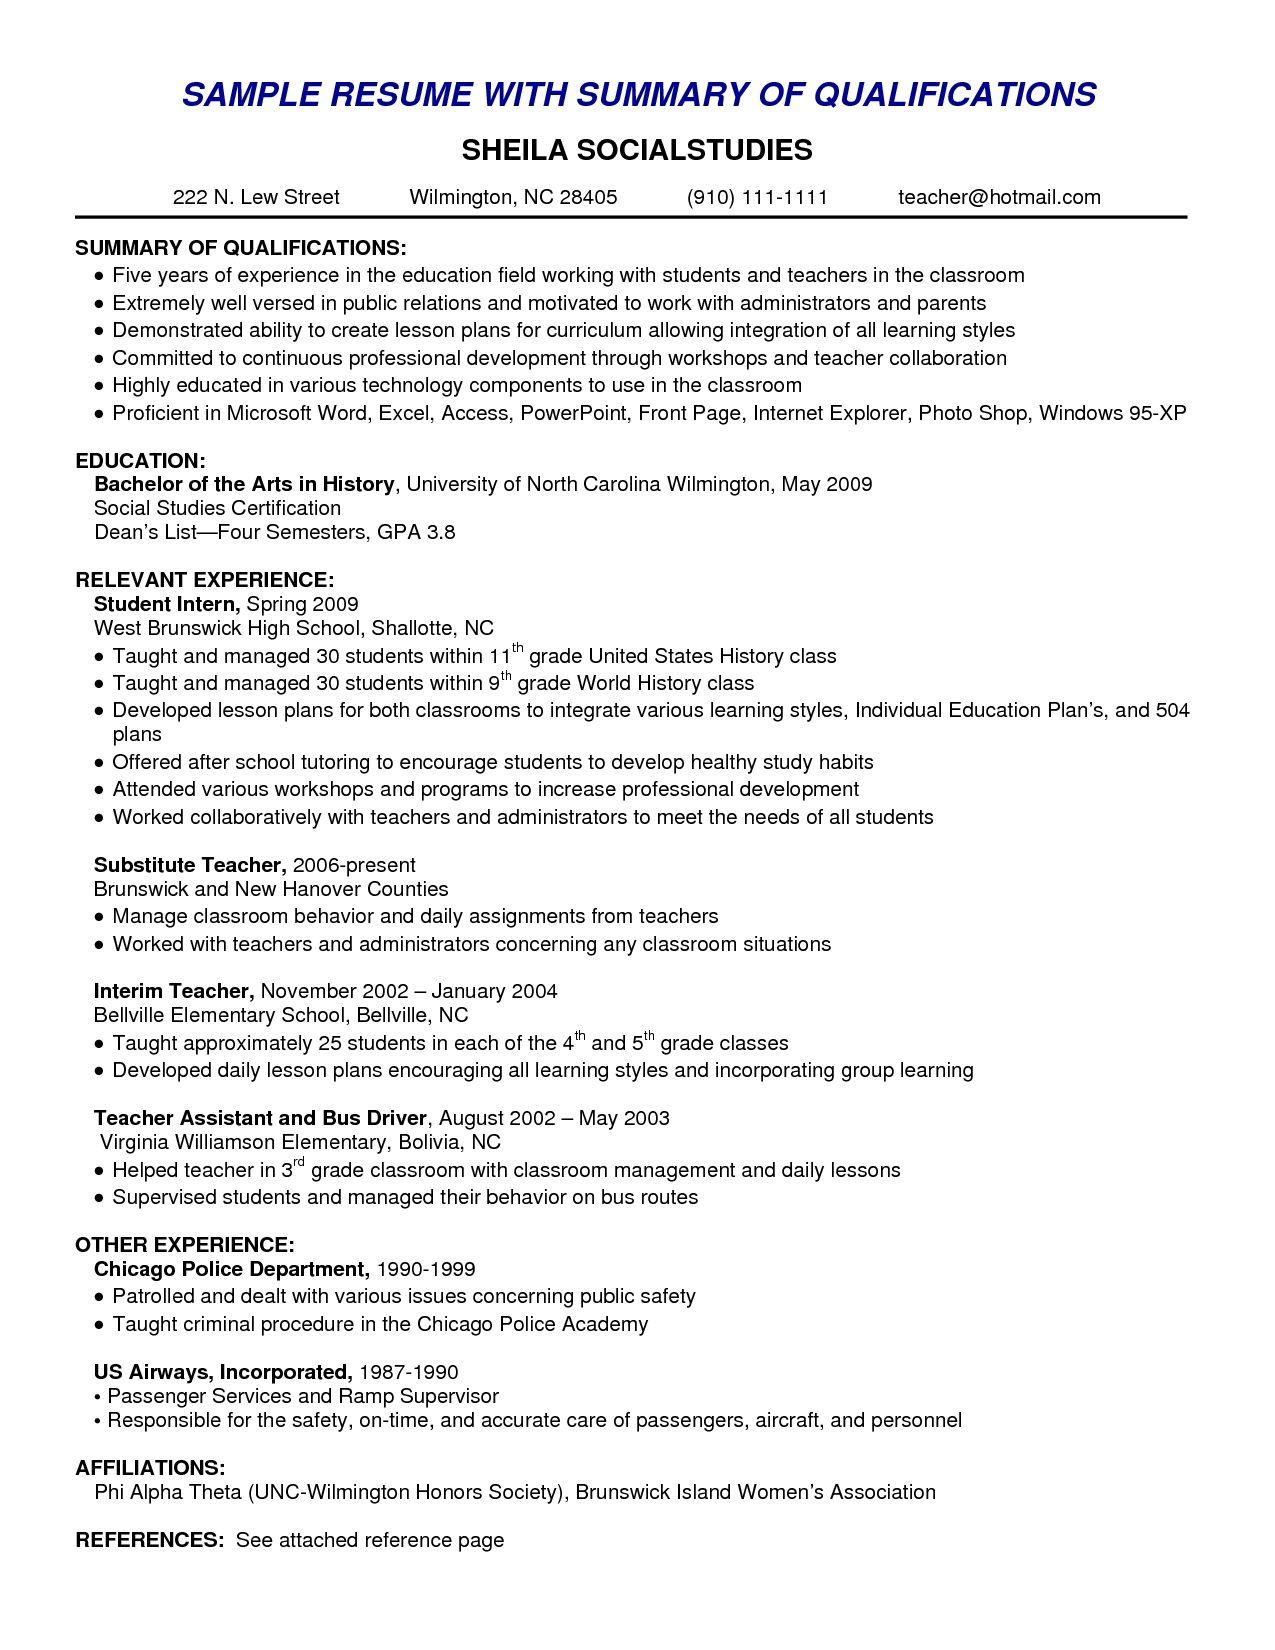 Resume Examples With Summary ResumeExamples